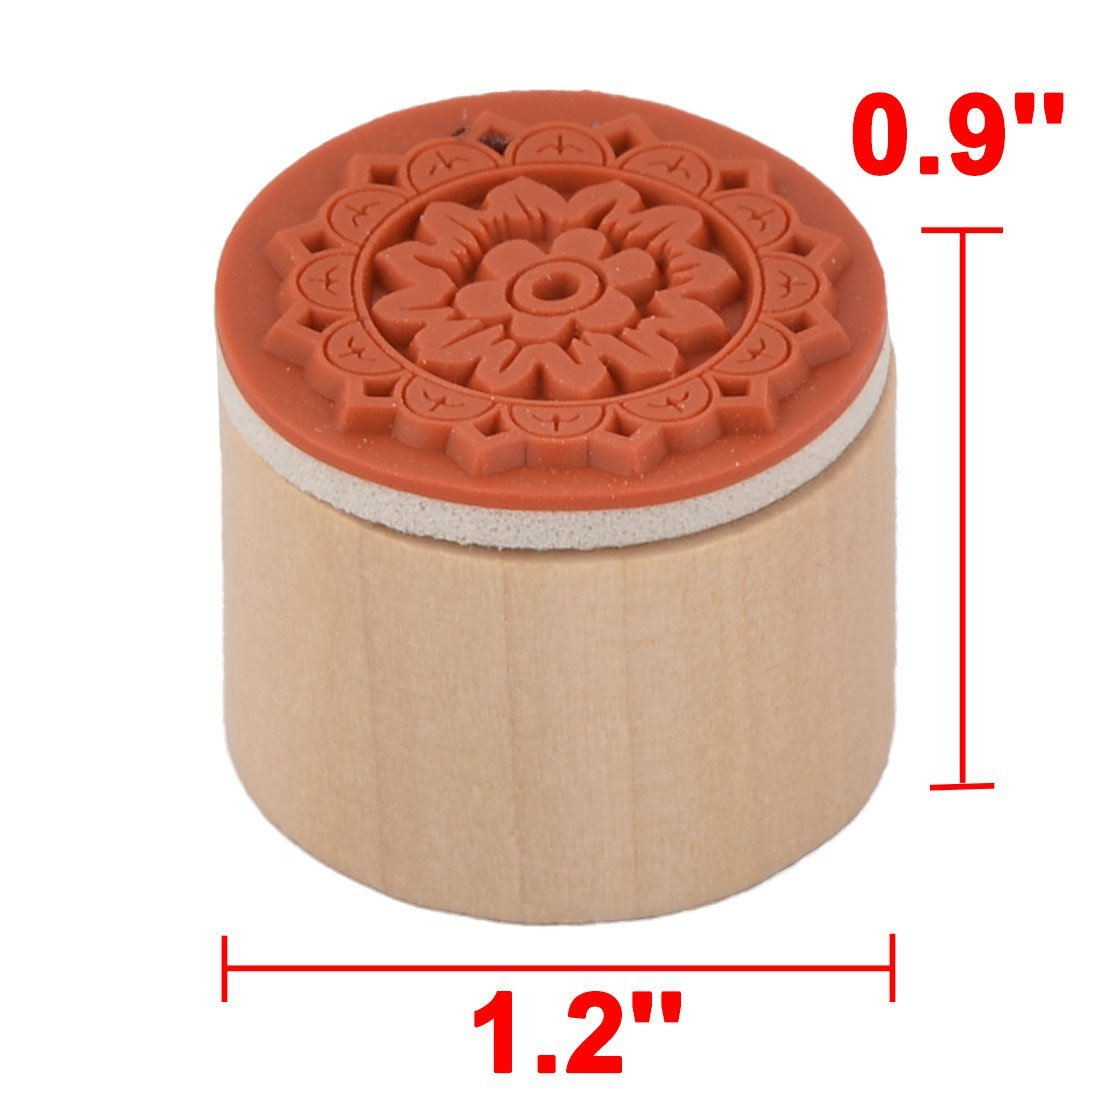 Amazon.com : eDealMax La Flor de Madera de impresión del sello de la Escuela Álbum de recortes Redonda DIY Sello Stamper 2 piezas Beige : Office Products